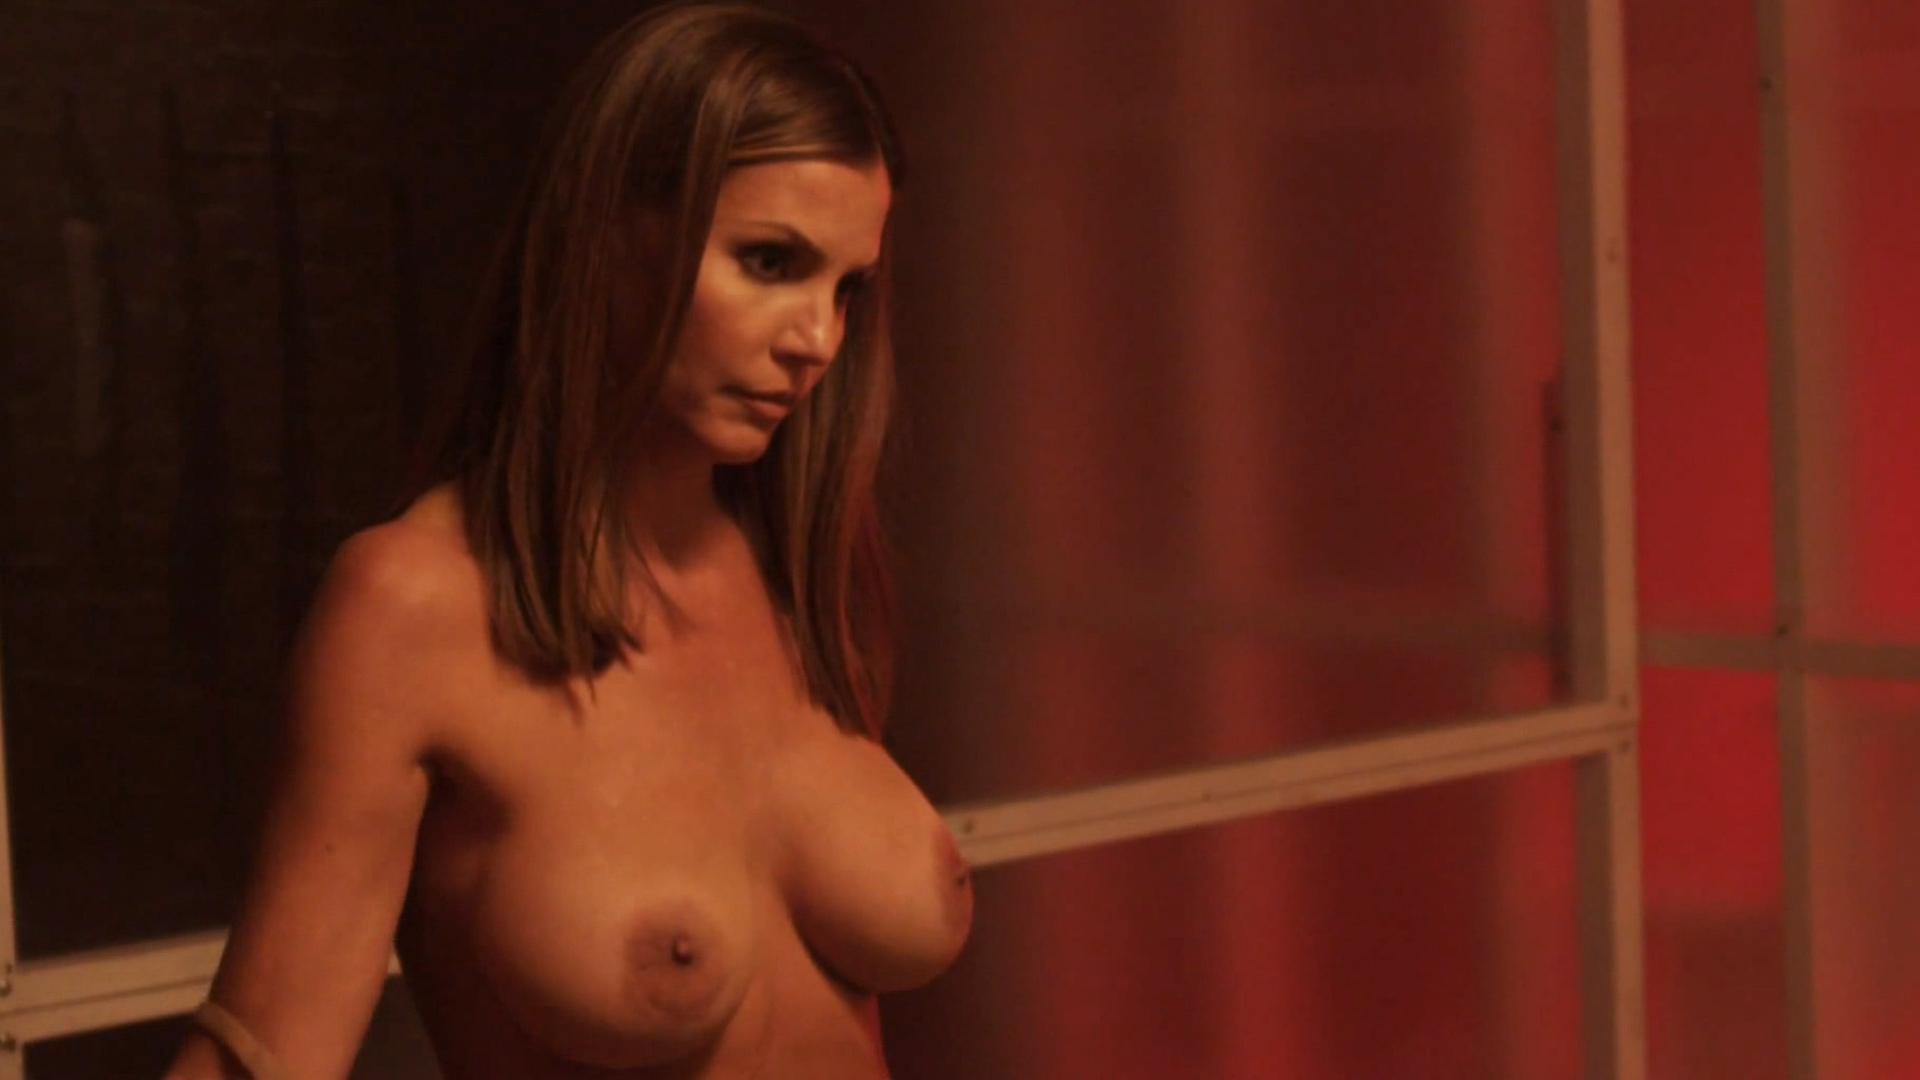 Boob side charisma carpenter your place would